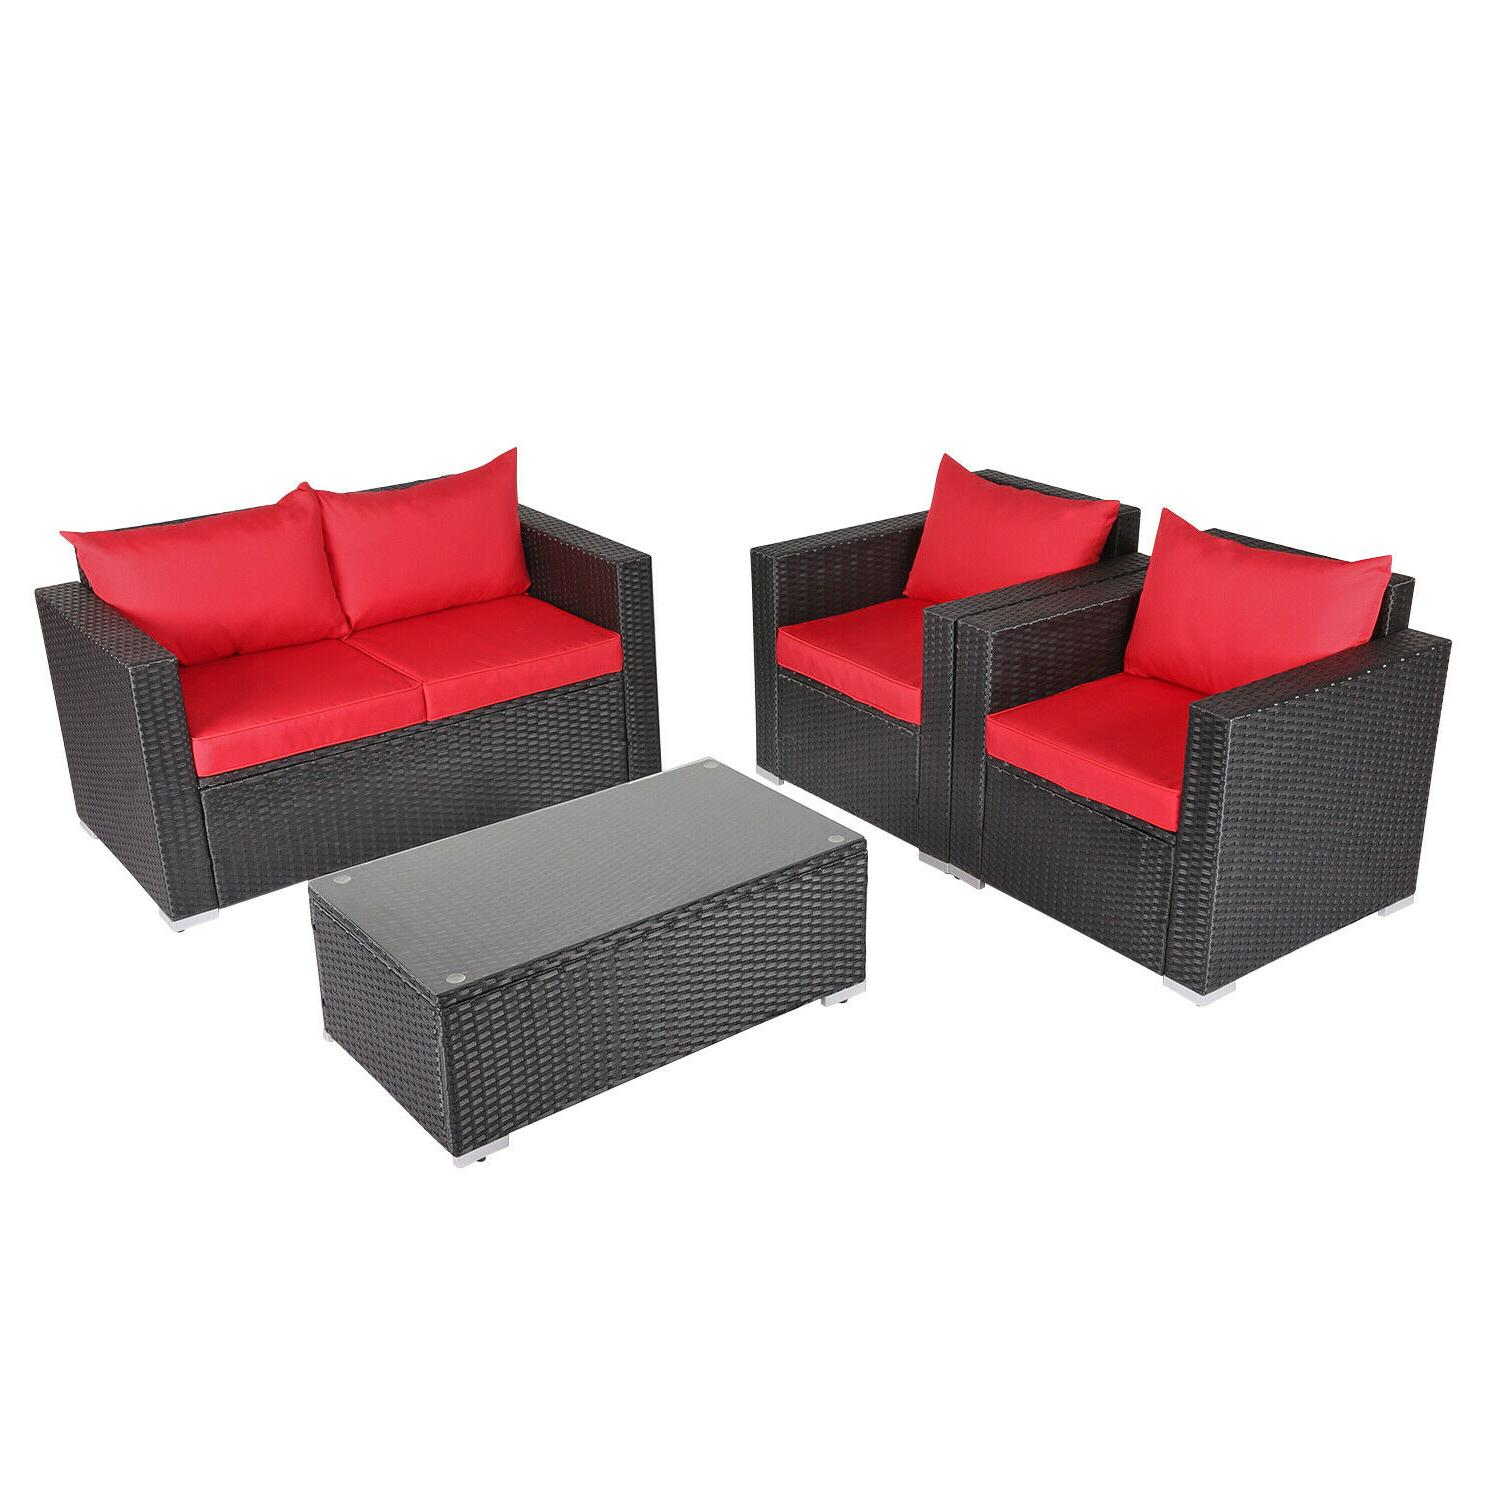 4PC Set Sectional Cushioned Garden